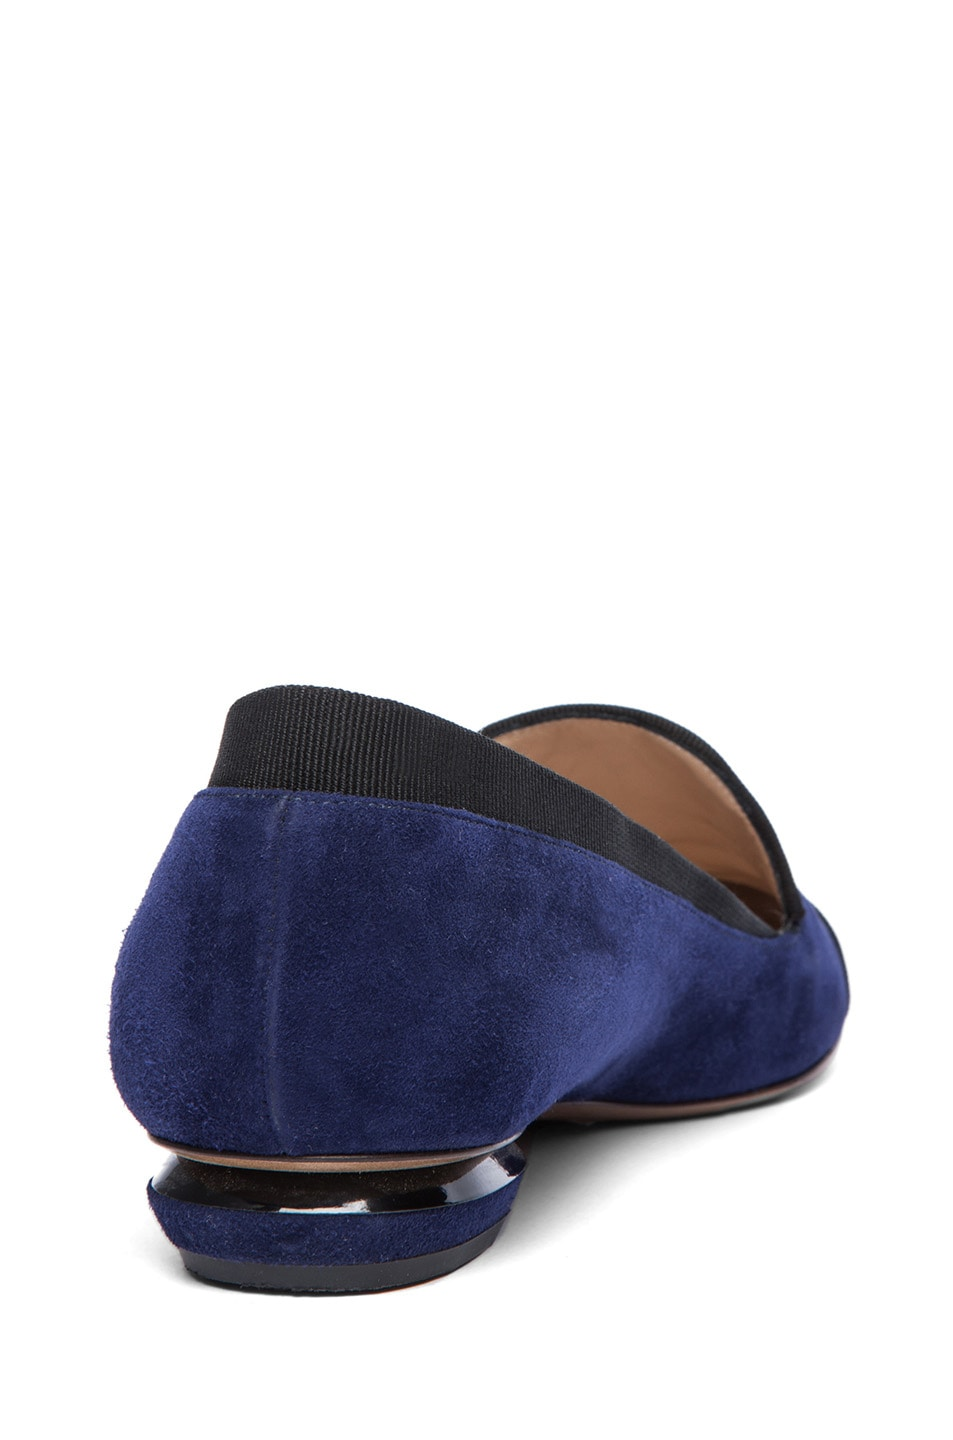 Image 3 of Nicholas Kirkwood Suede Loafers in Black & Indigo